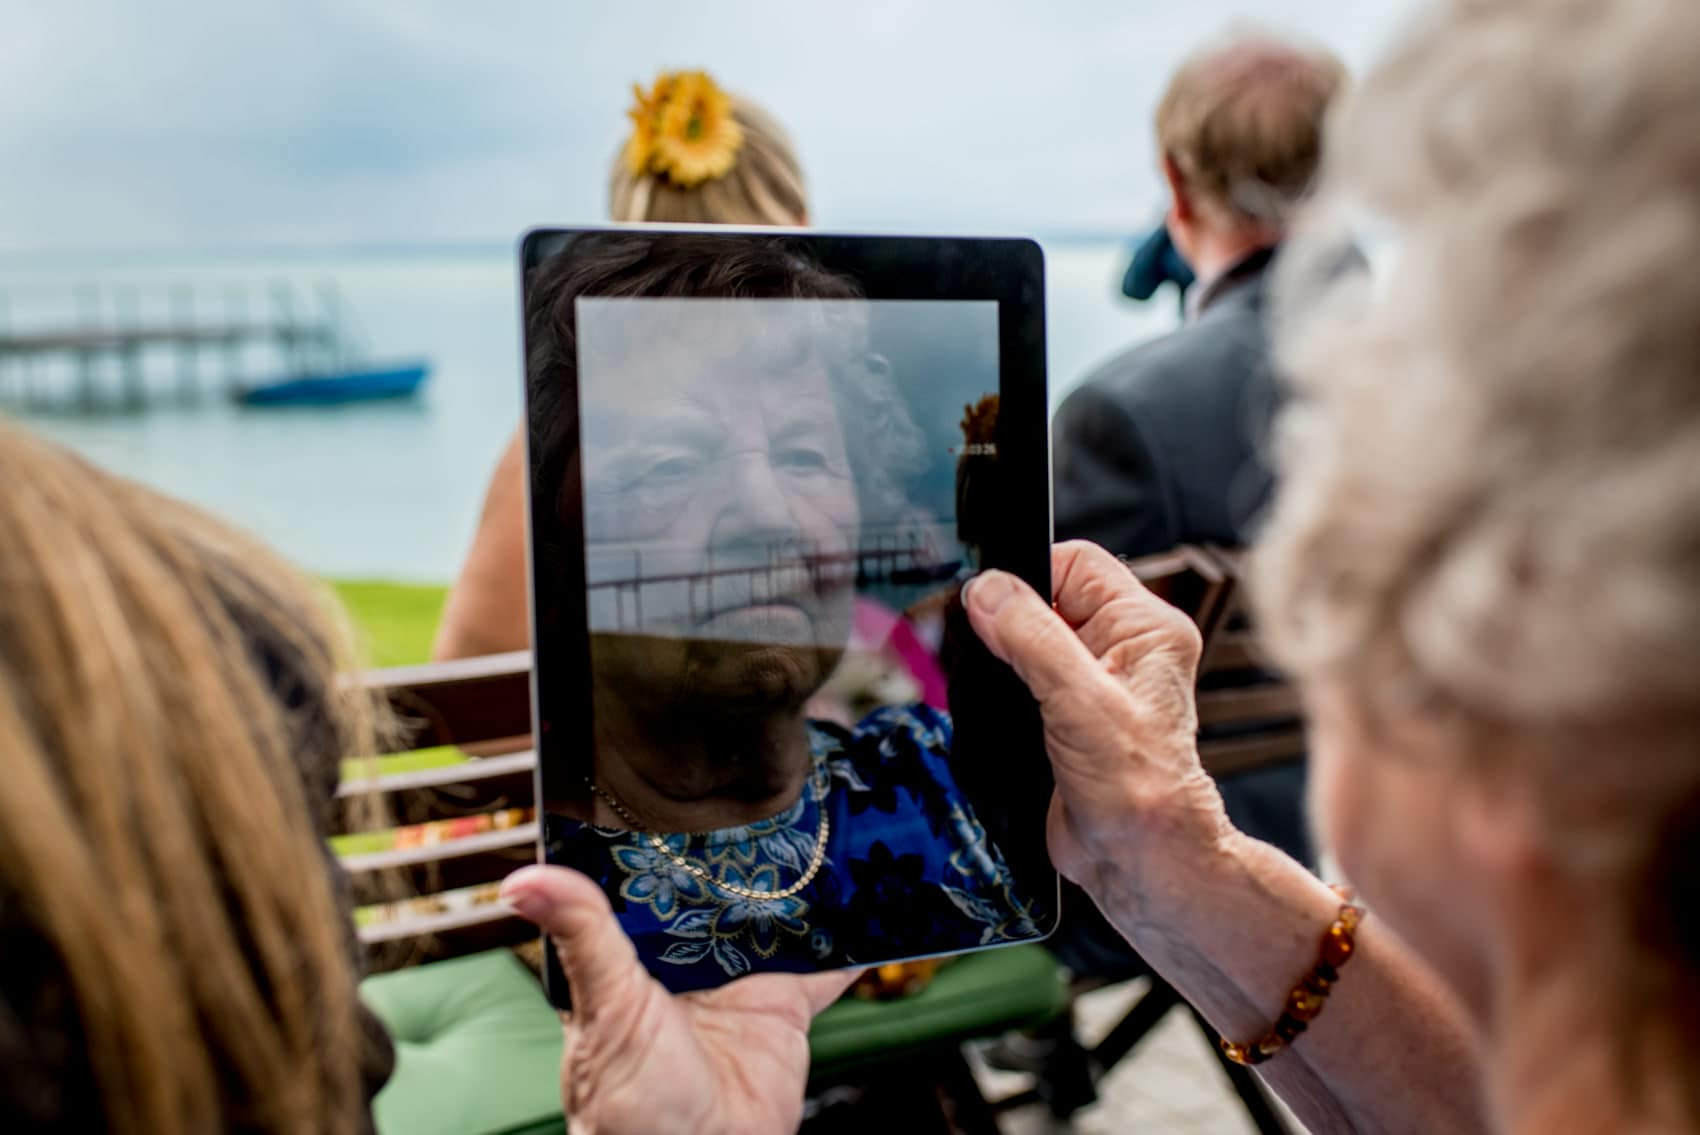 grandmother at lake balaton with her reflection in an ipad